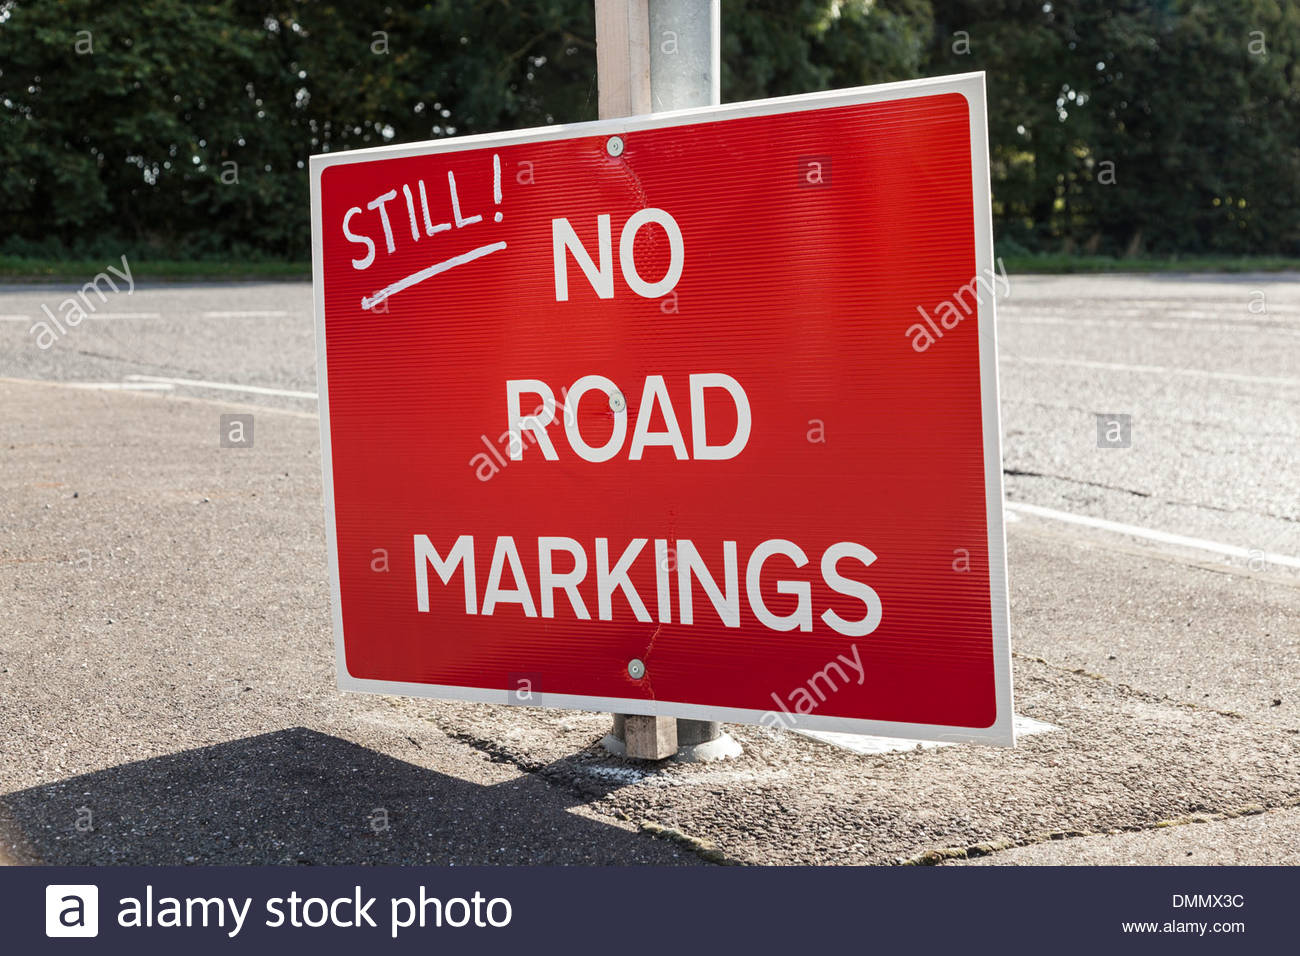 Defaced road sign - Still No Road Markings - Stock Image